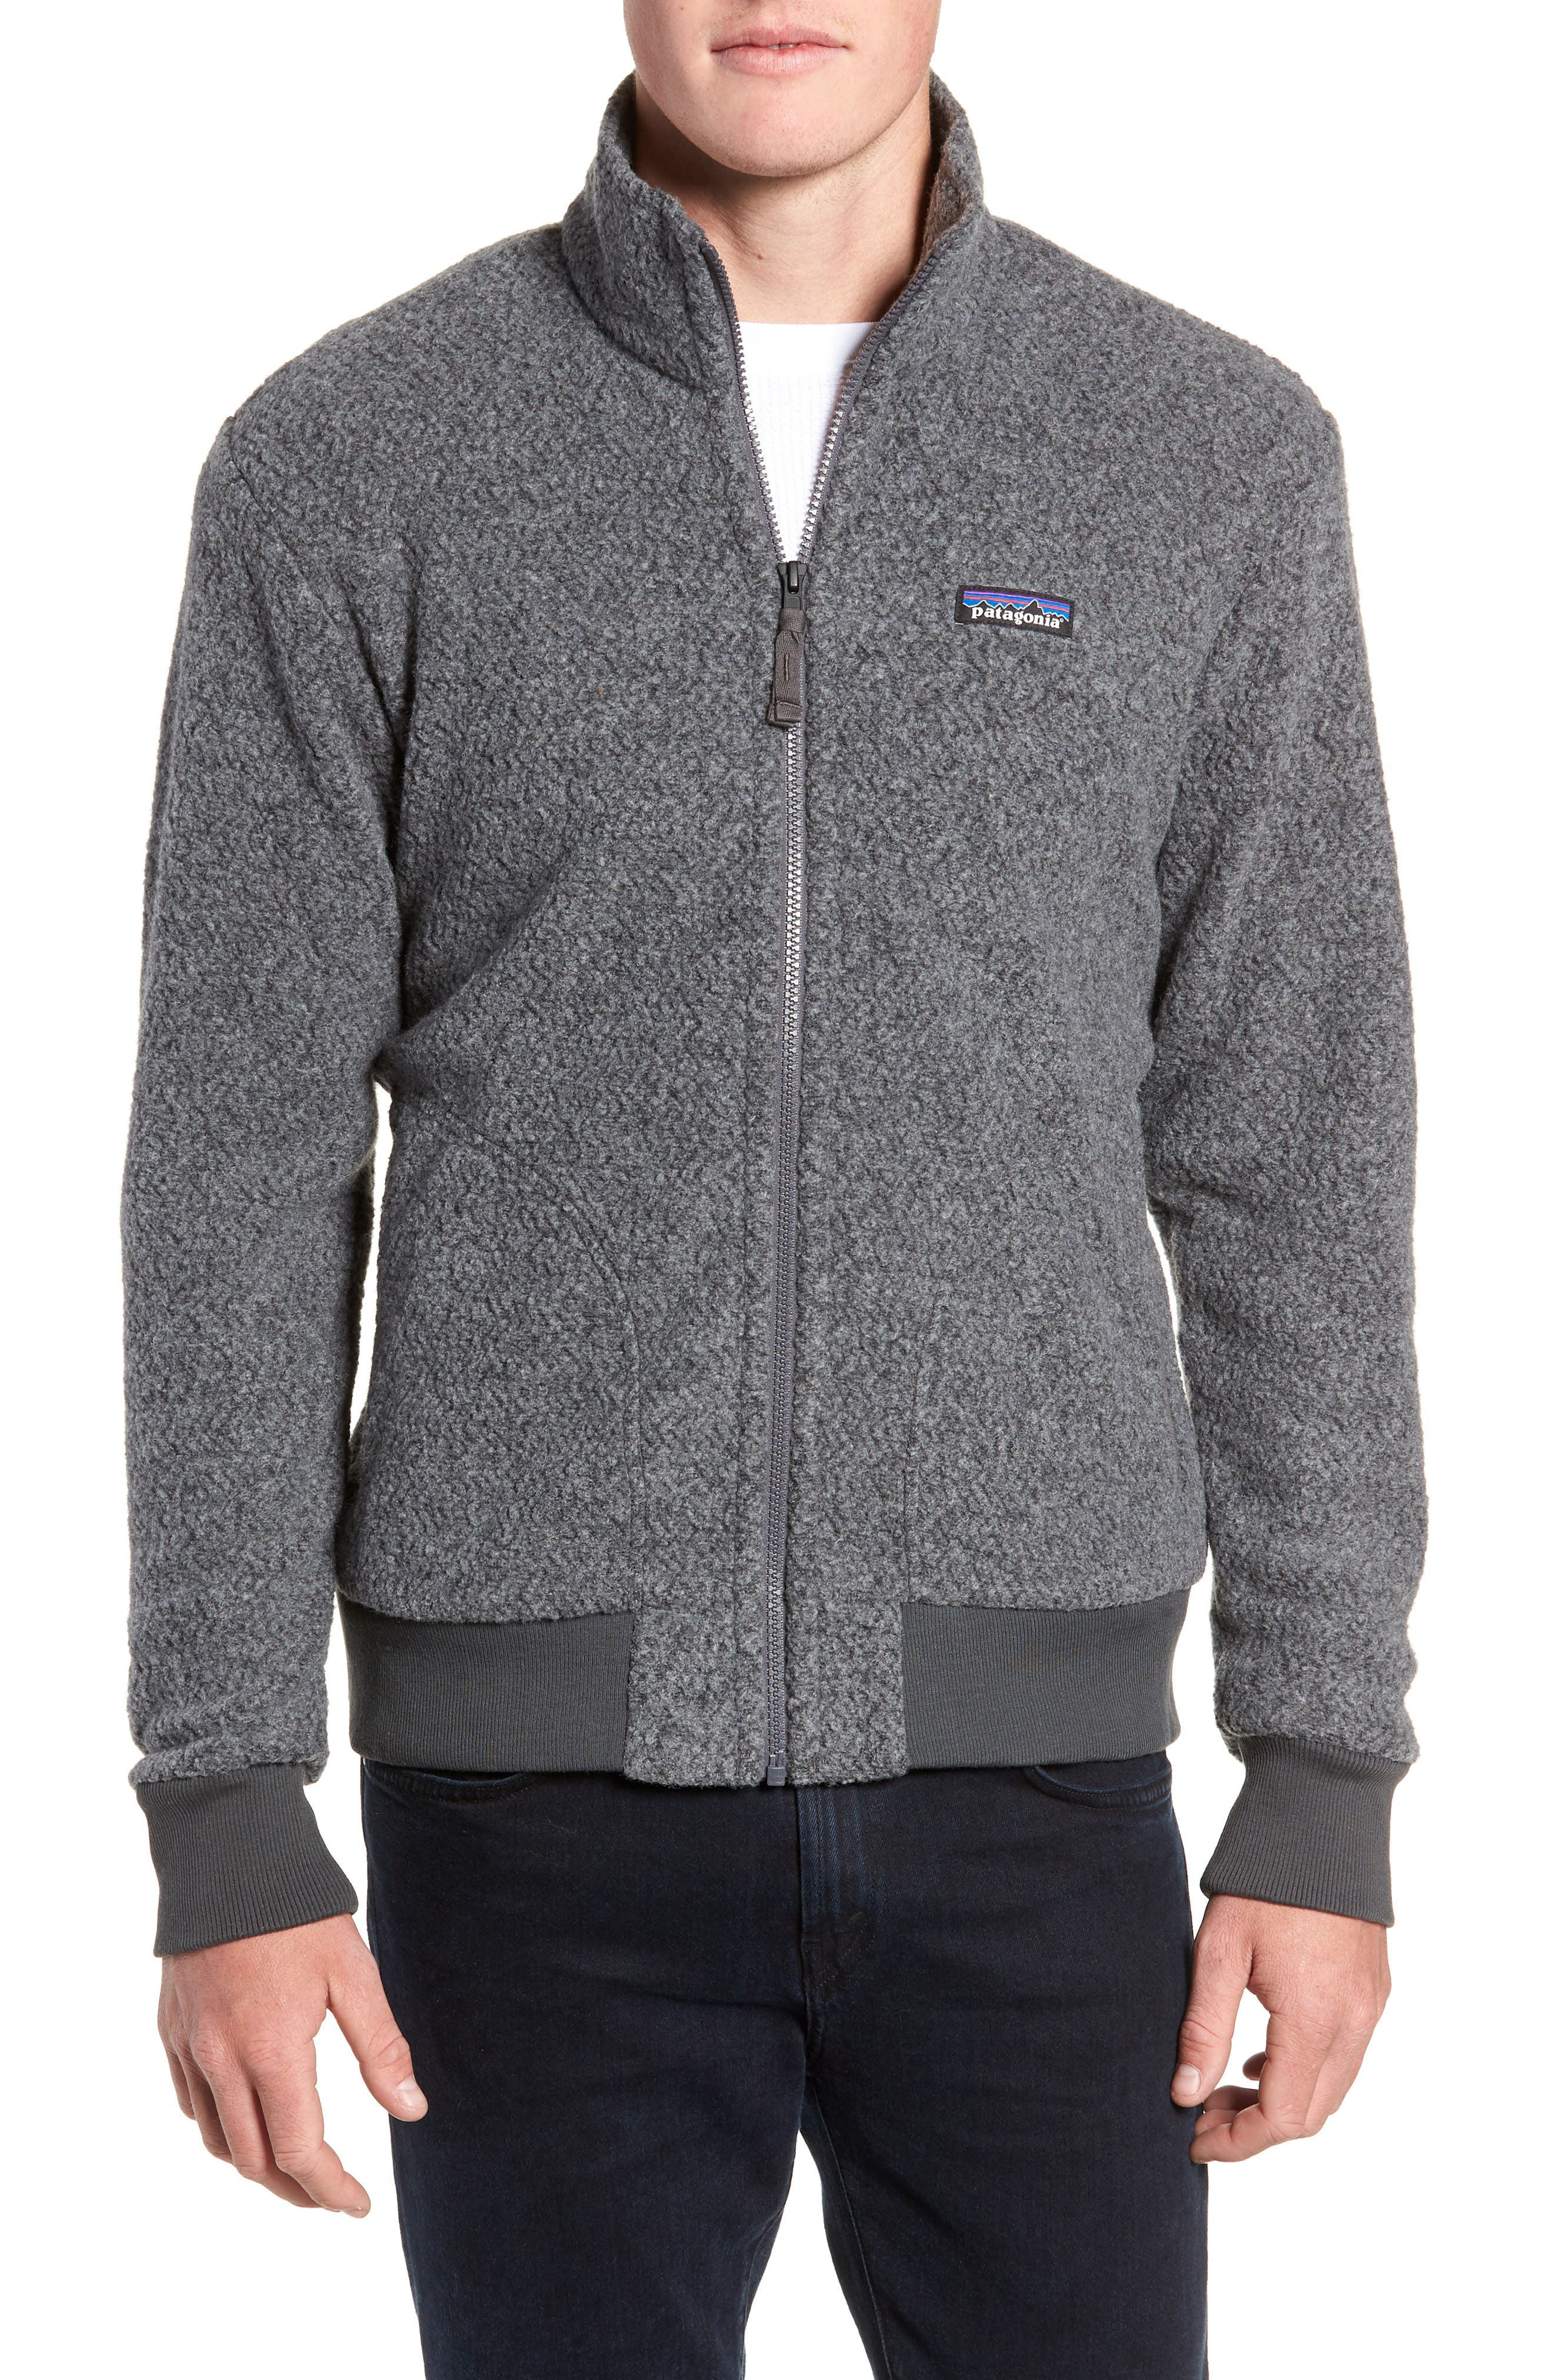 Woolyester Fleece Jacket,                             Main thumbnail 1, color,                             FORGE GREY